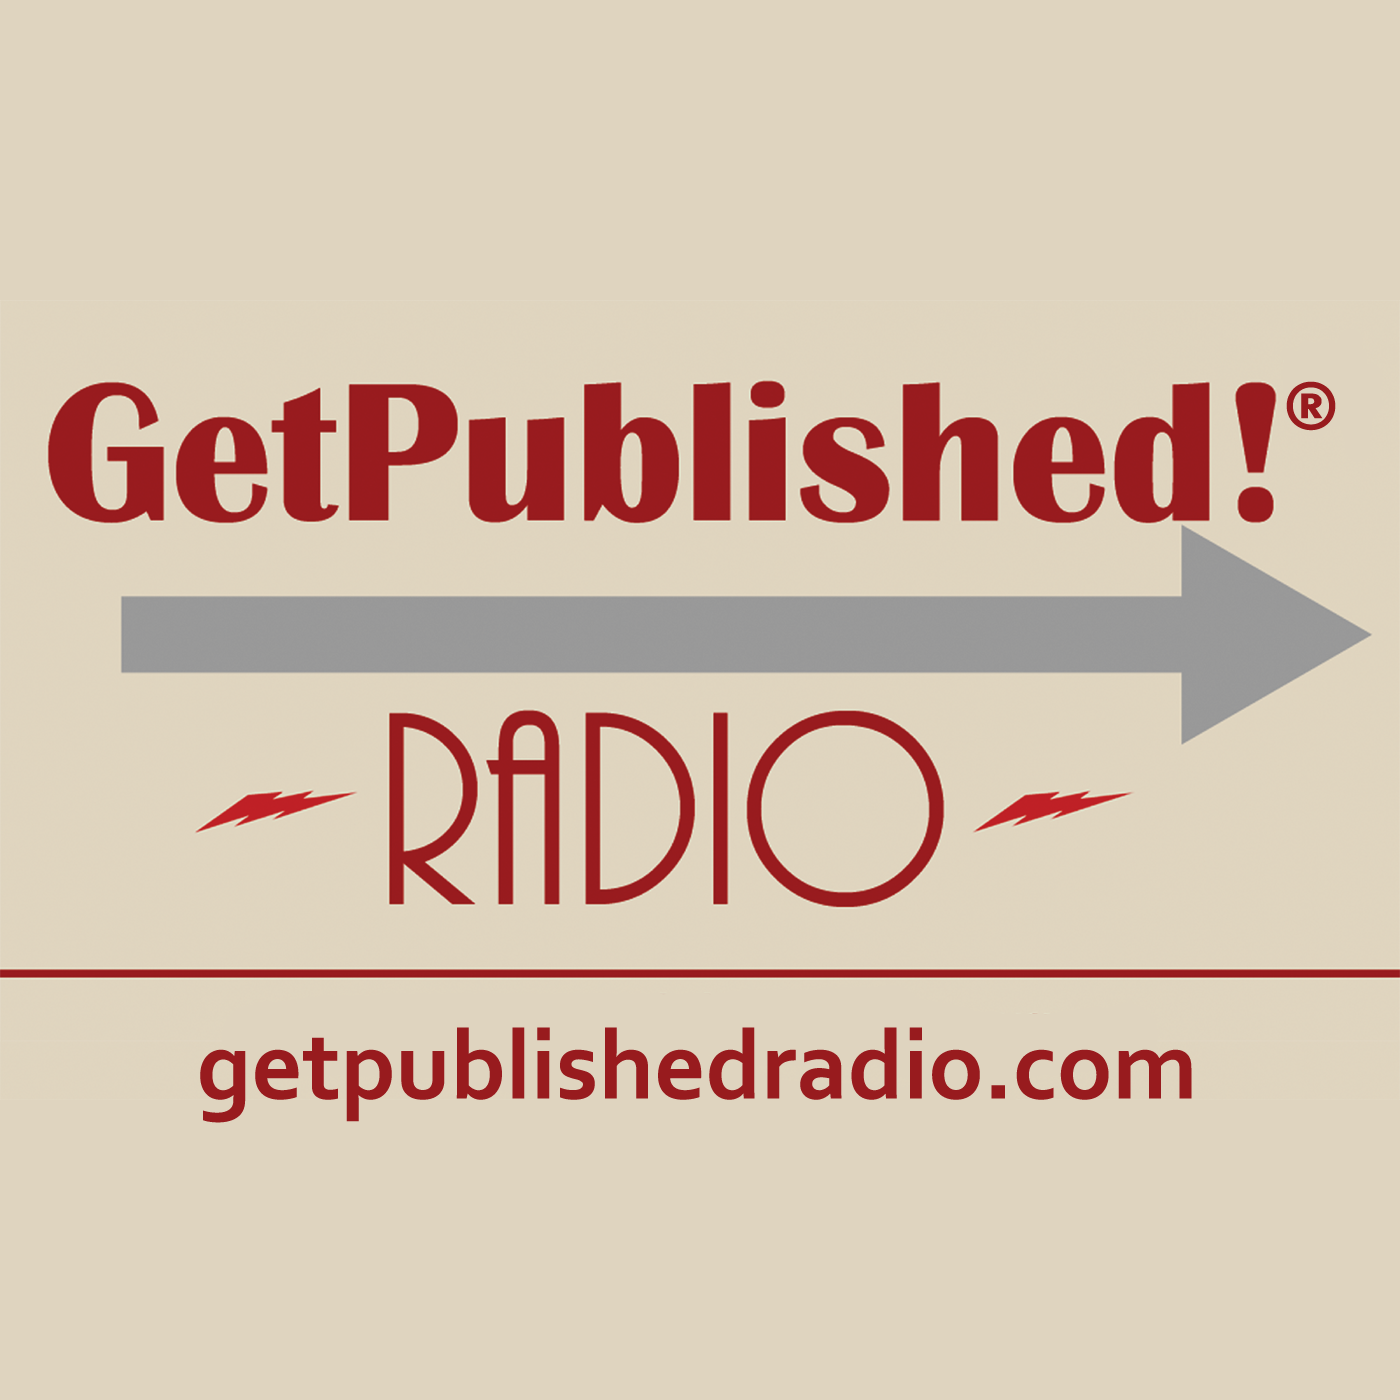 Caption: GetPublished! Radio, Credit: La Puerta Productions